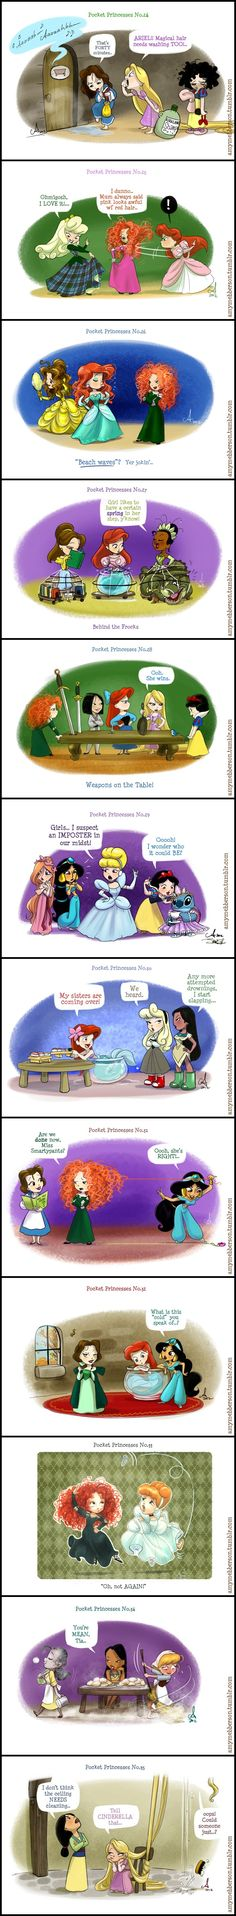 Pocket Princesses (Part 3) by Amy Mebberson